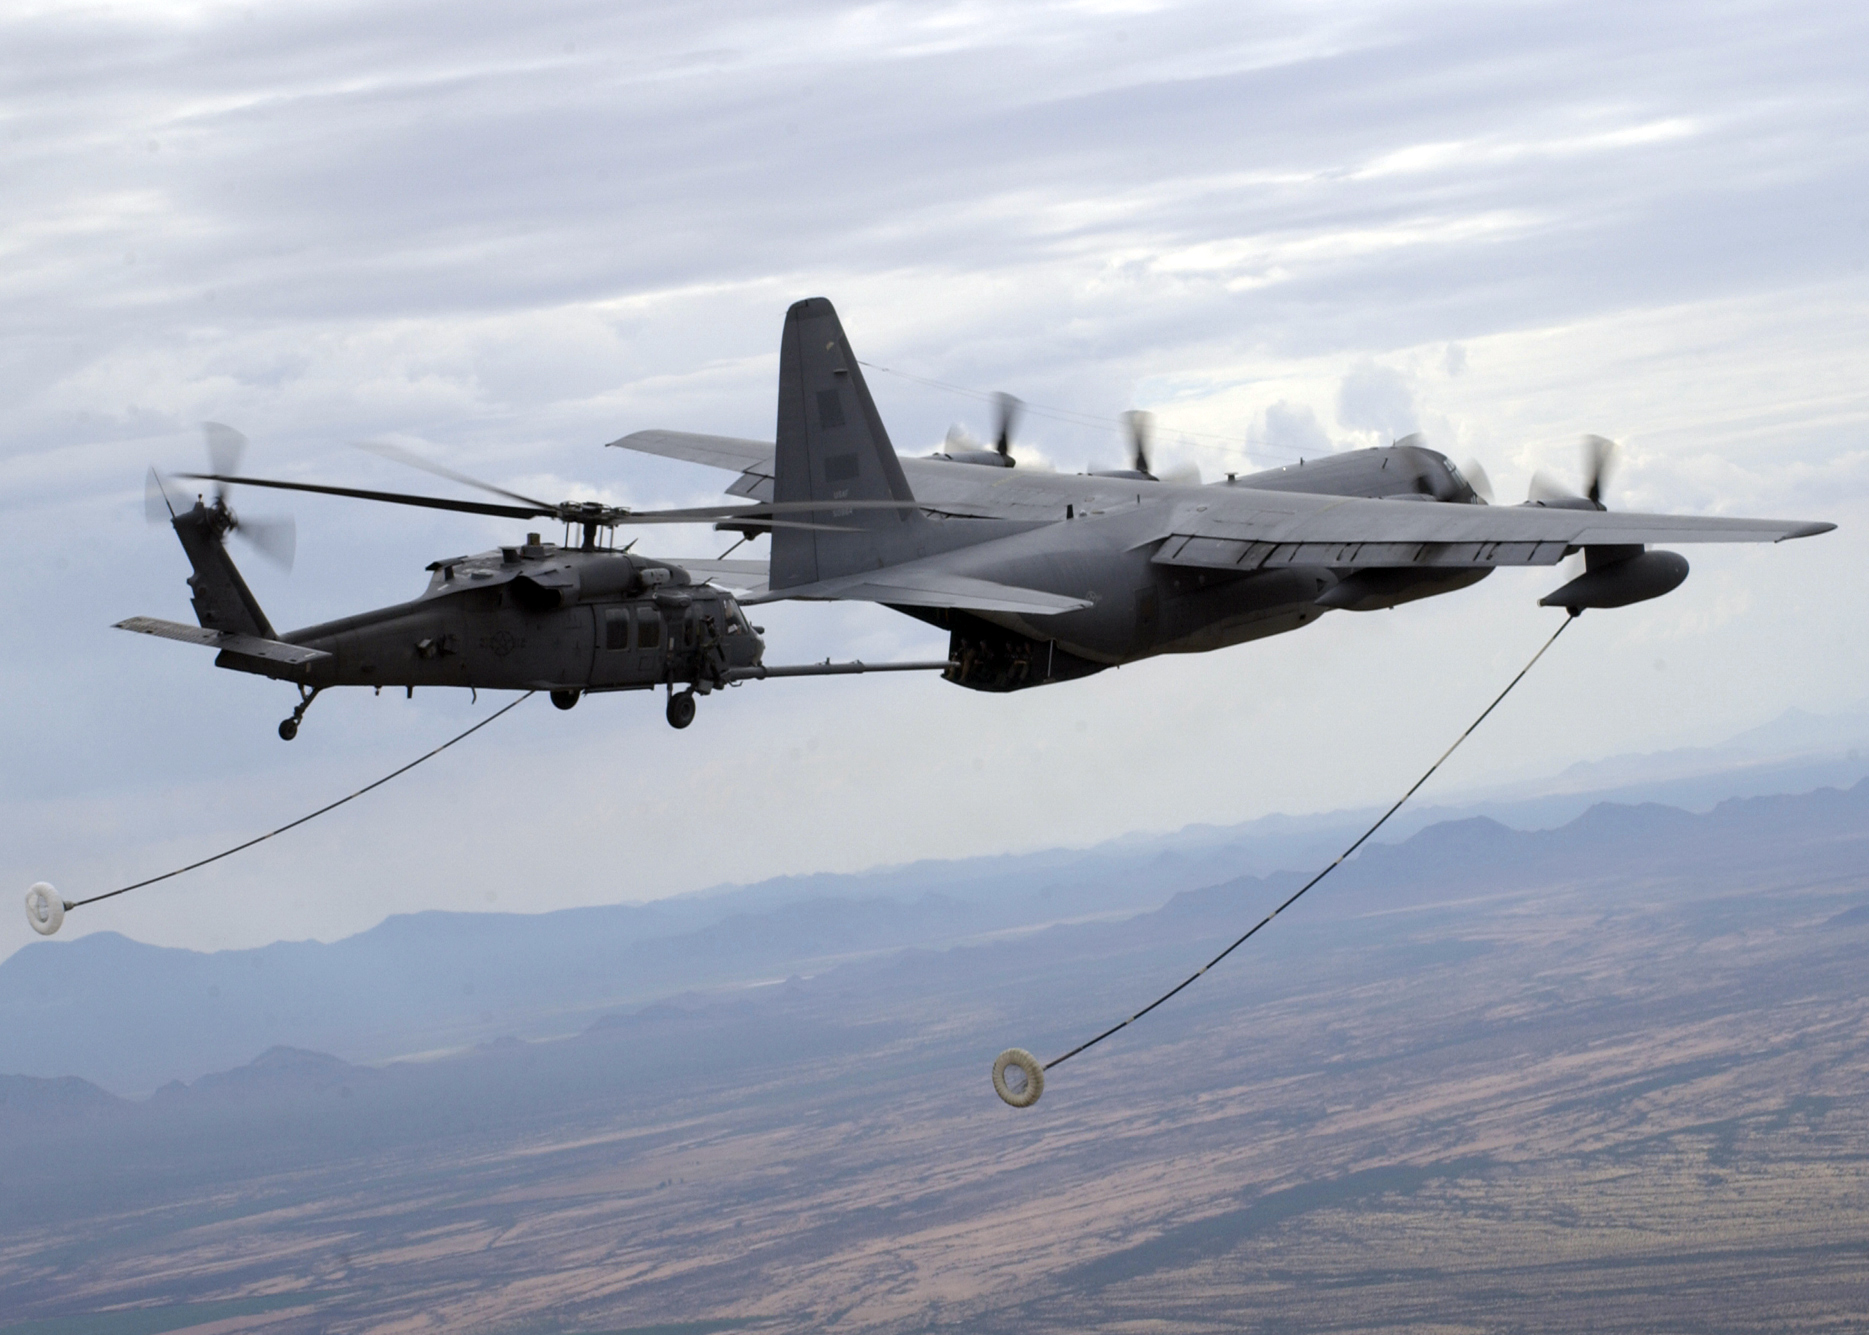 HC-130P - HC-130P refueling a chopper.